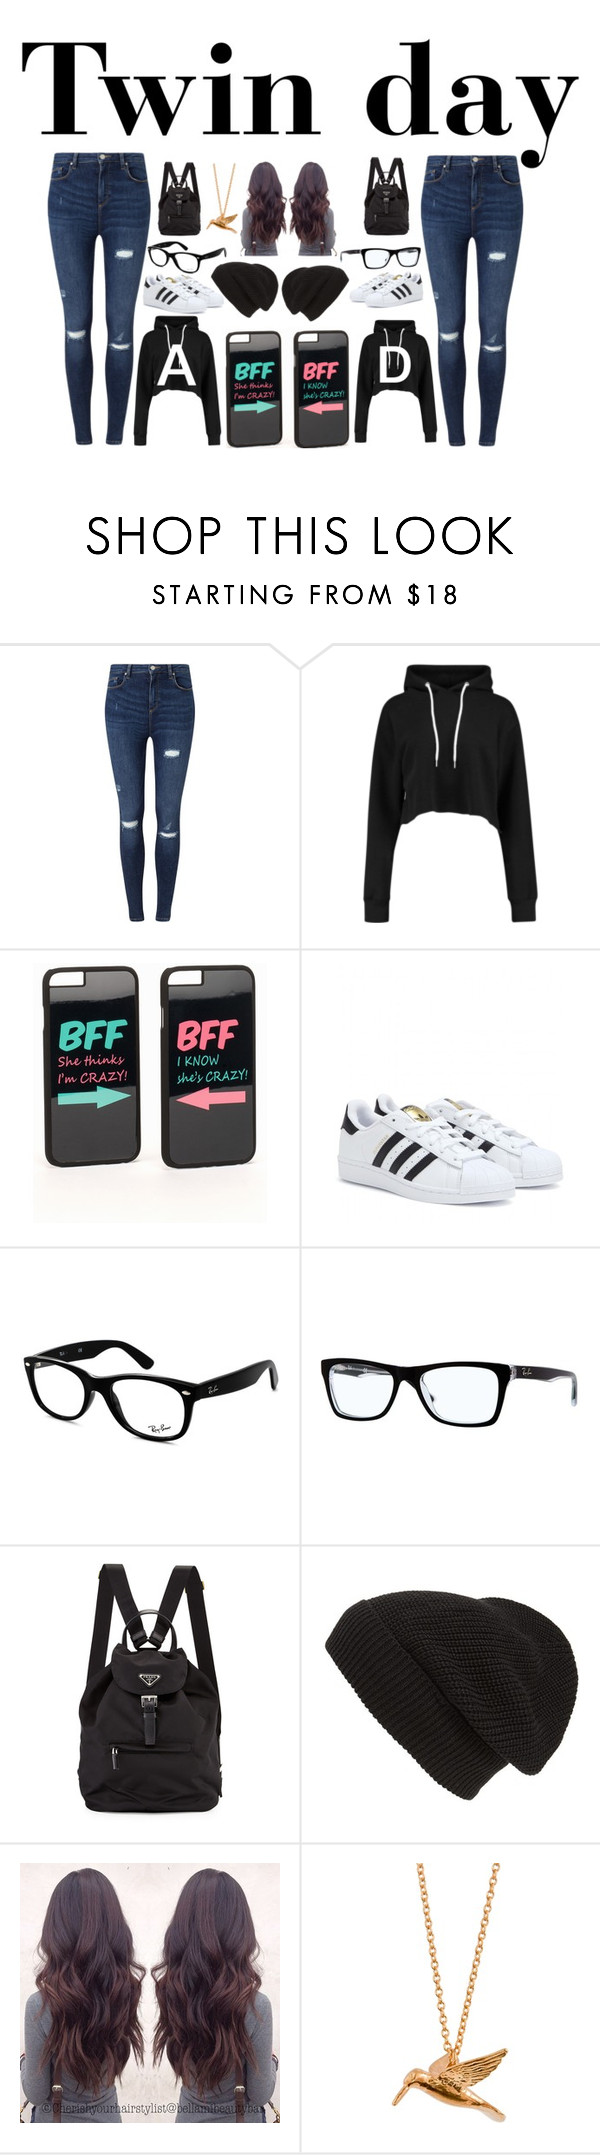 """Spirit week"" by unknownandloveit on Polyvore featuring Miss Selfridge, JFR, adidas, Ray-Ban, Prada, Phase 3 and Alex Monroe"